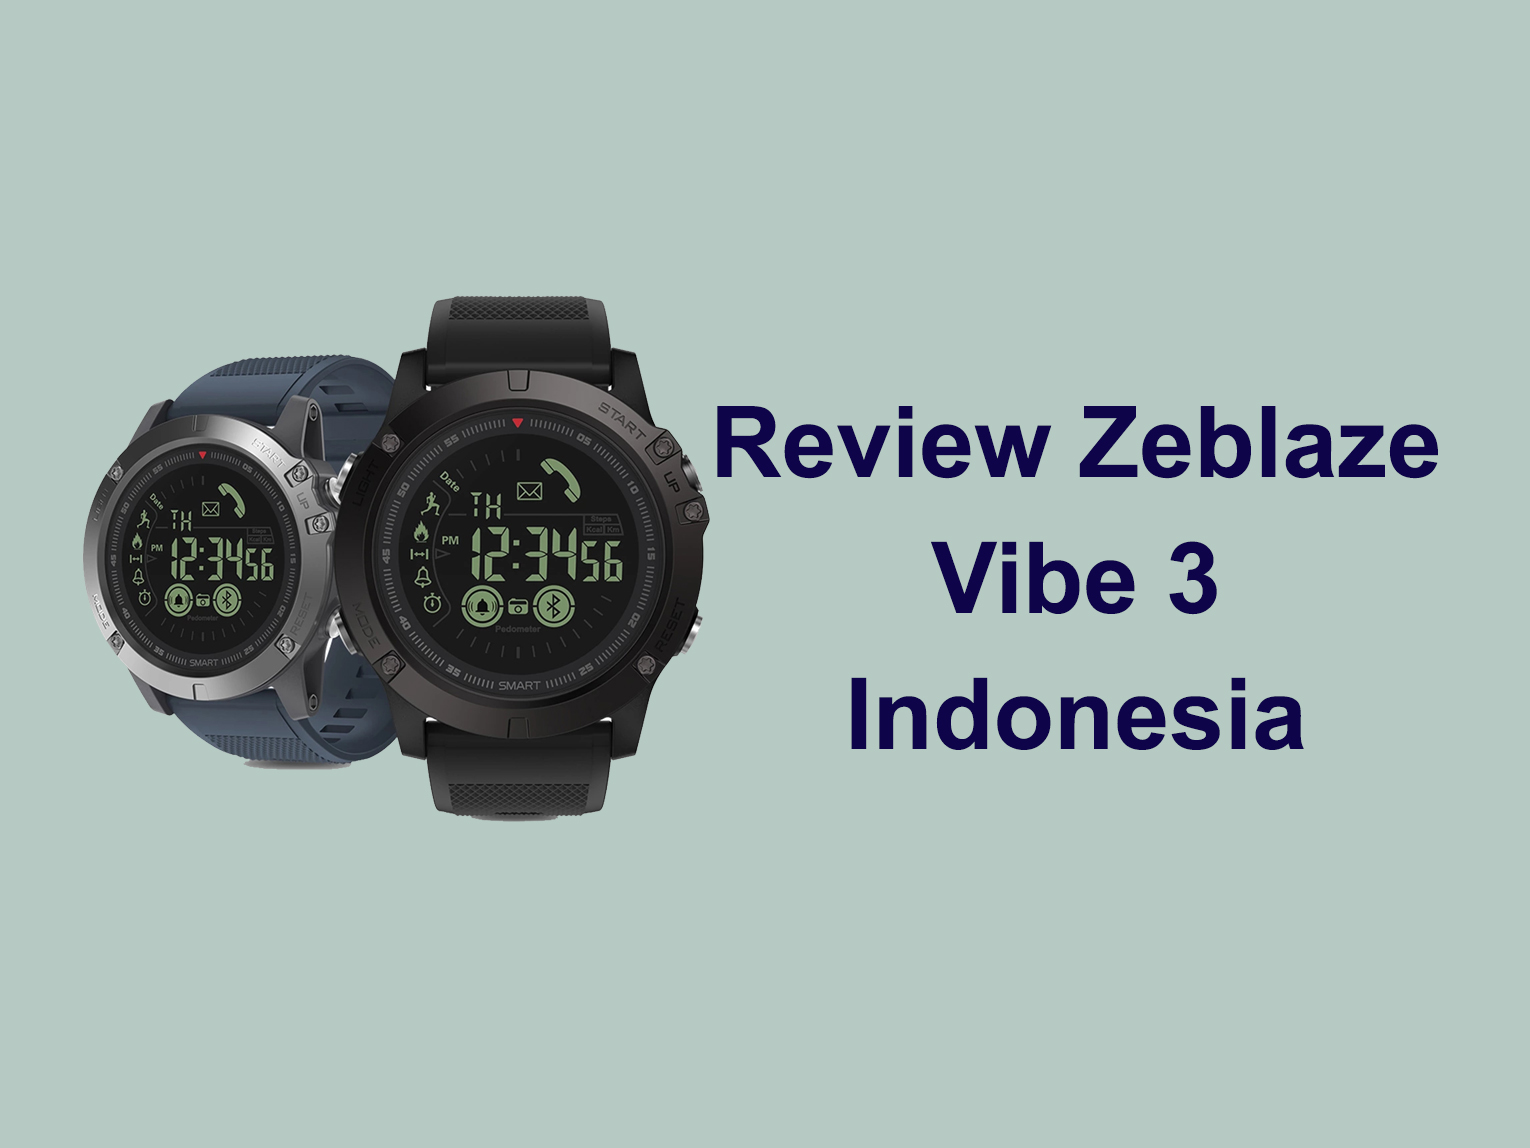 Review Zeblaze Vibe 3 Indonesia Susiloblog